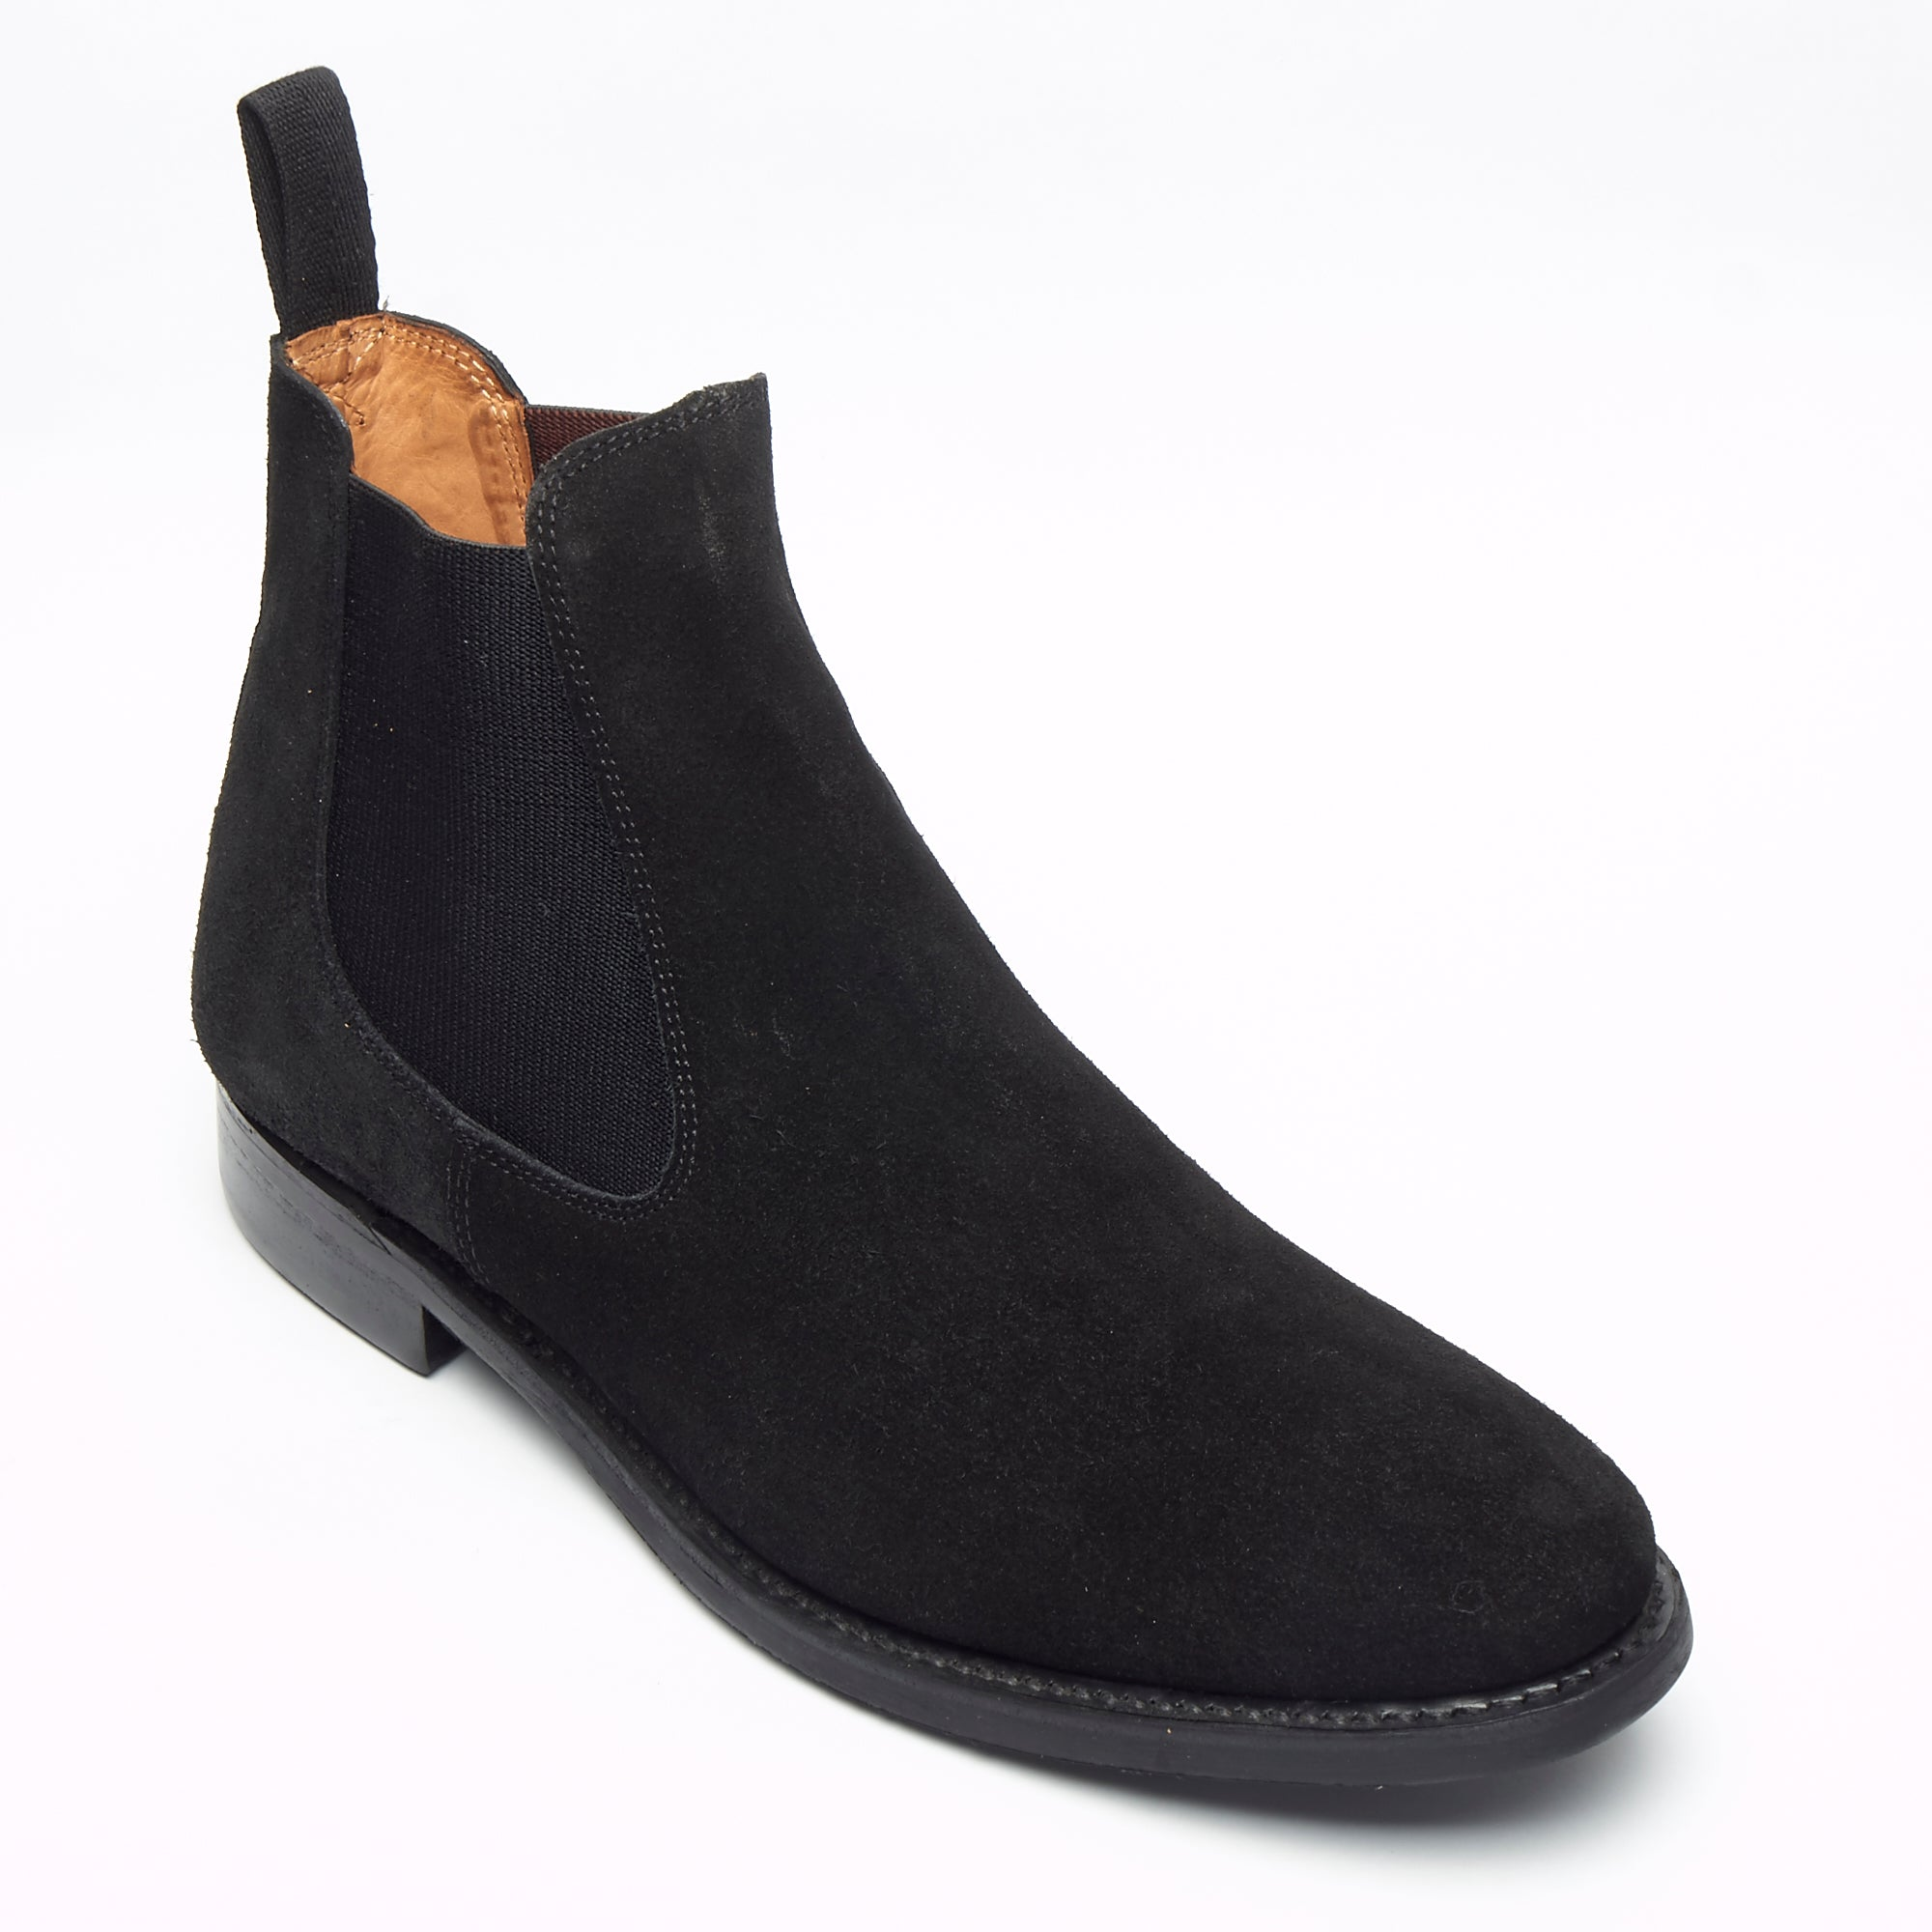 Mens Goodyear Welted Suede Chelsea Boots - 27817 Black